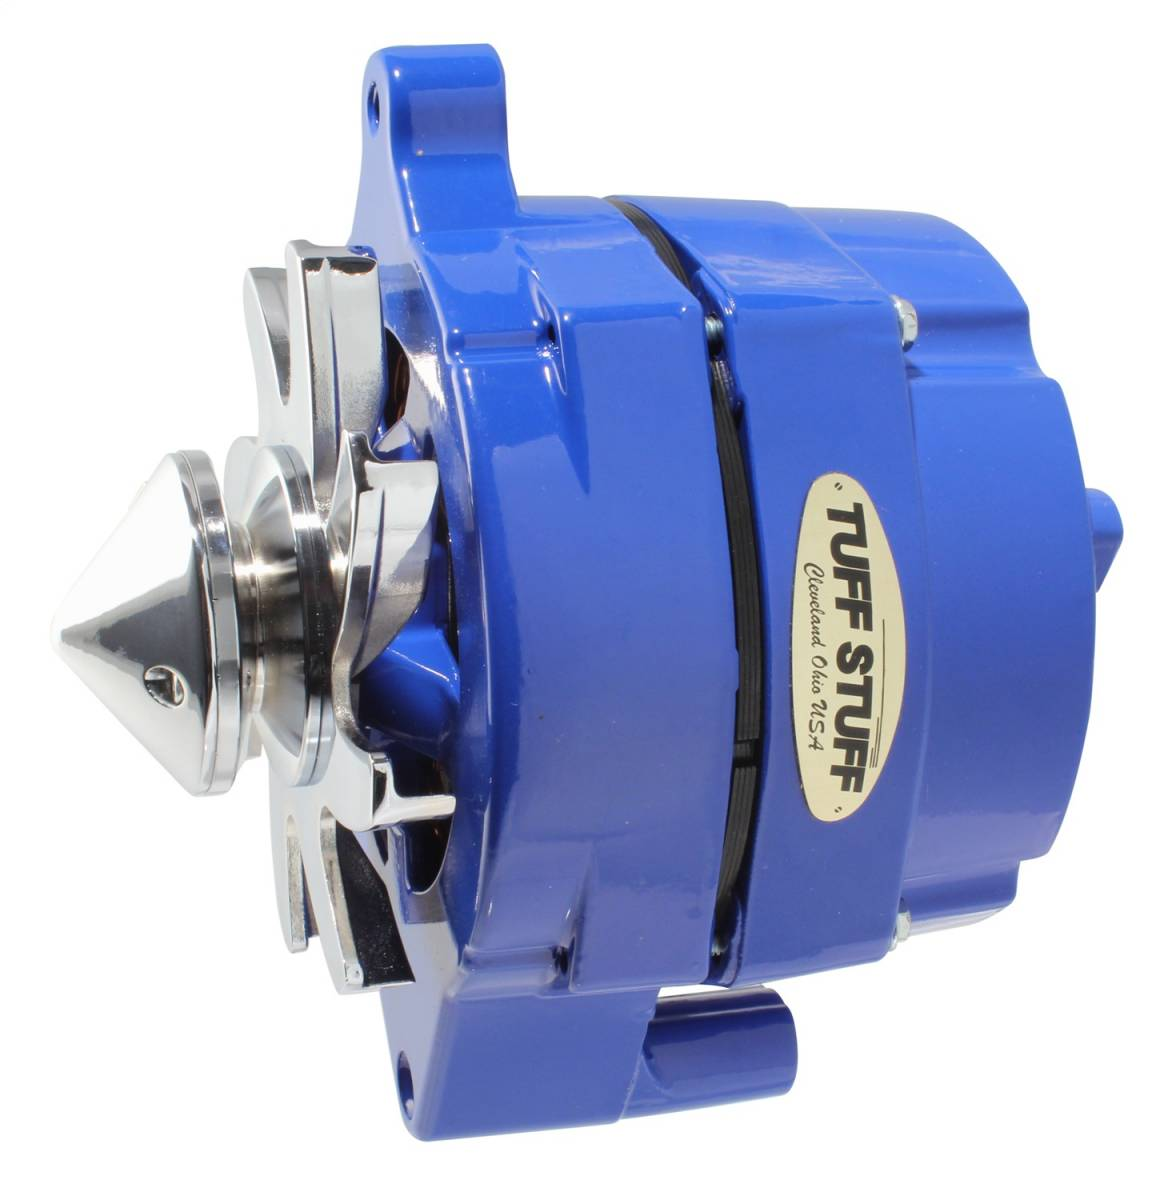 Tuff Stuff Performance - Silver Bullet Alternator 100 AMP Smooth Back 1 Wire V Bullet Pulley Blue Powdercoat w/Chrome Accents 7068FBULLBLU